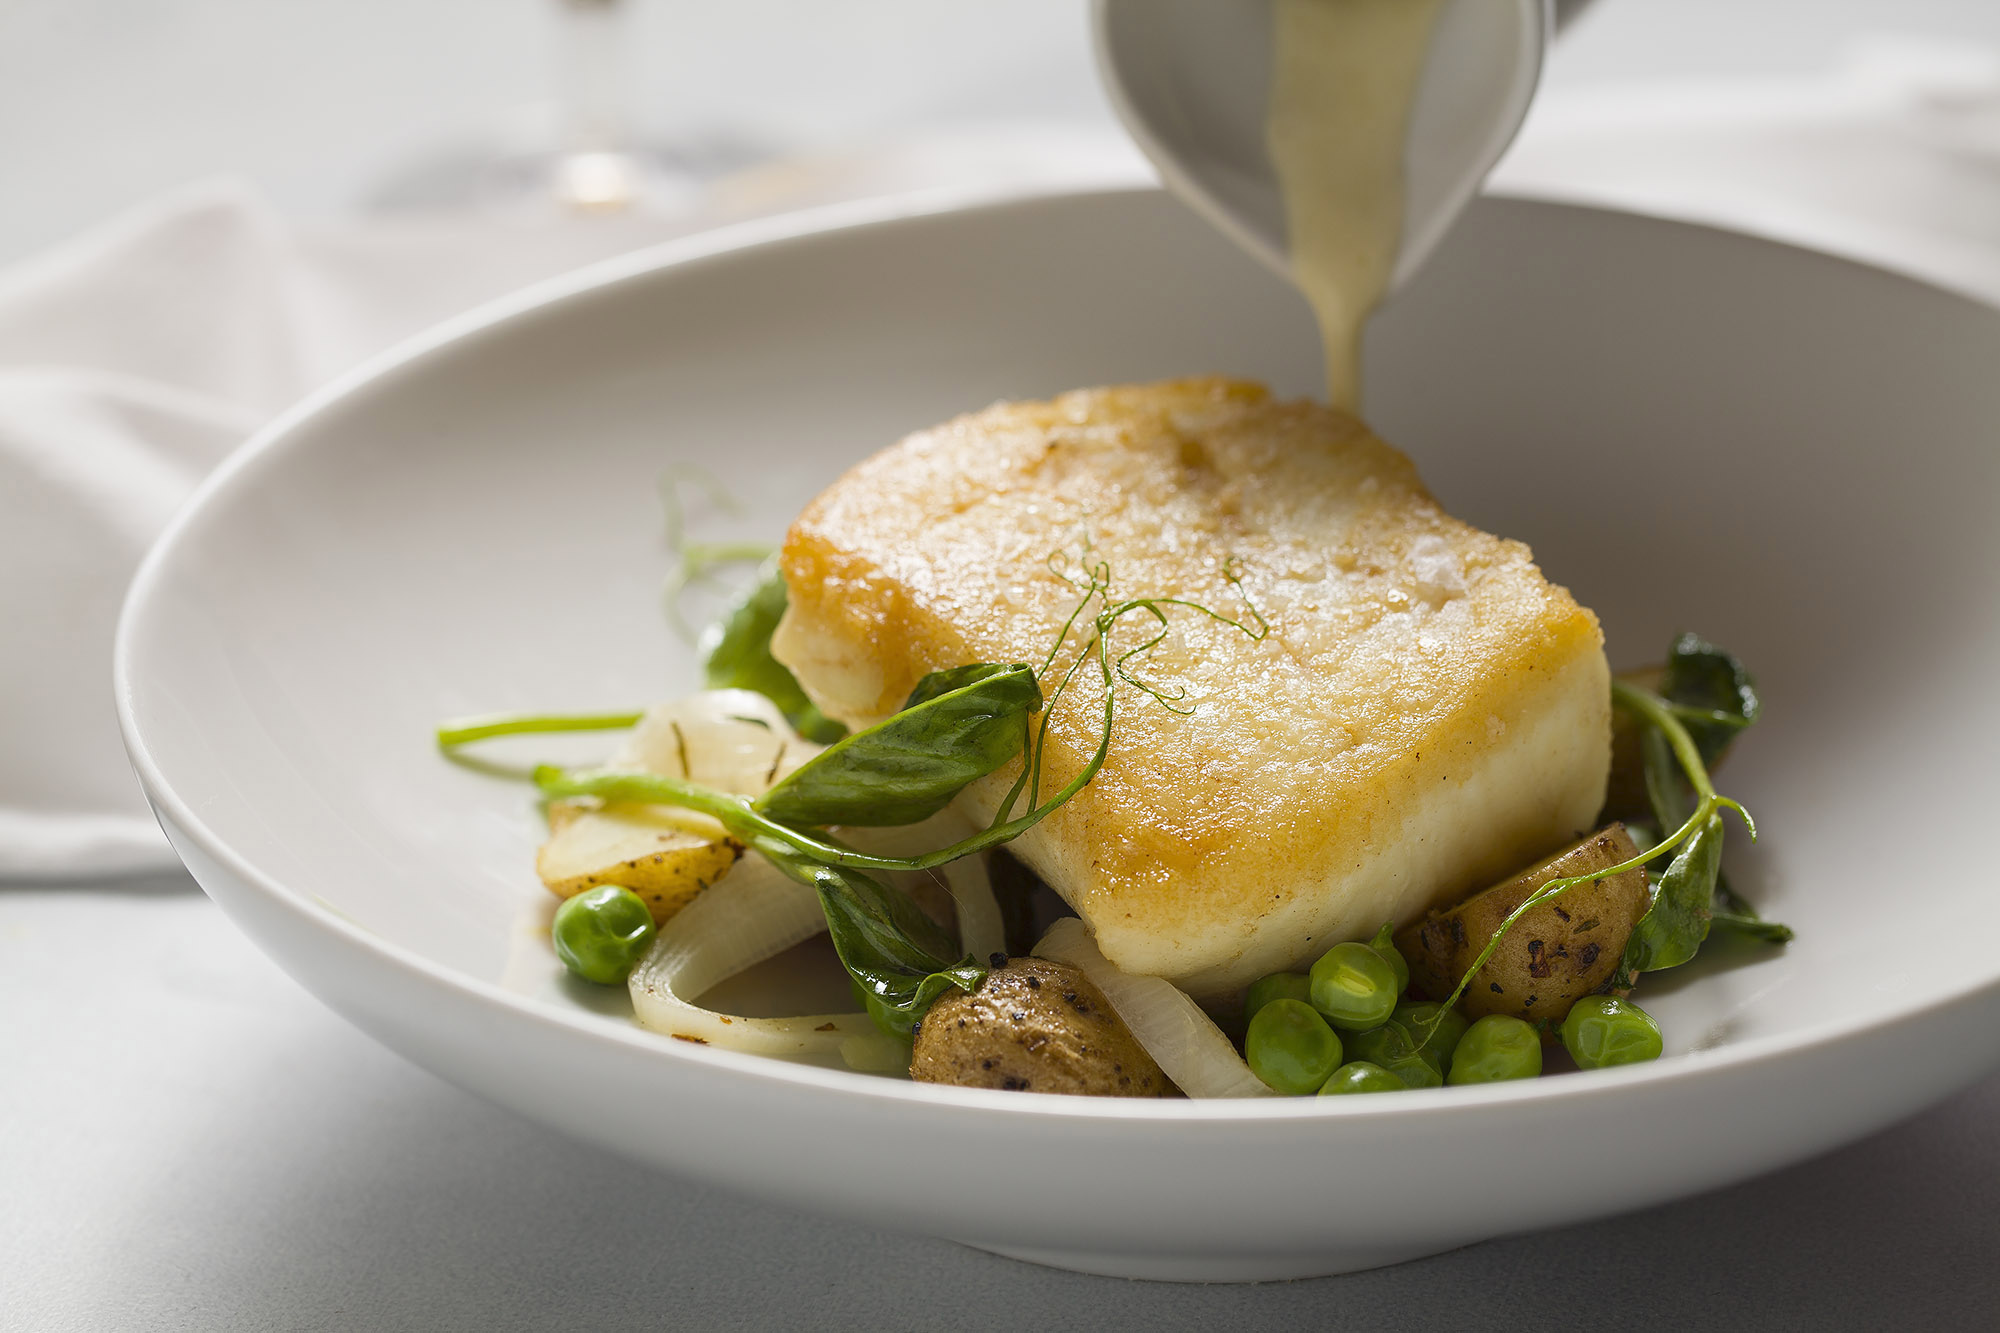 The world's largest species of flatfish, fresh Pacific Halibut is now available until early November and we're ready for it!